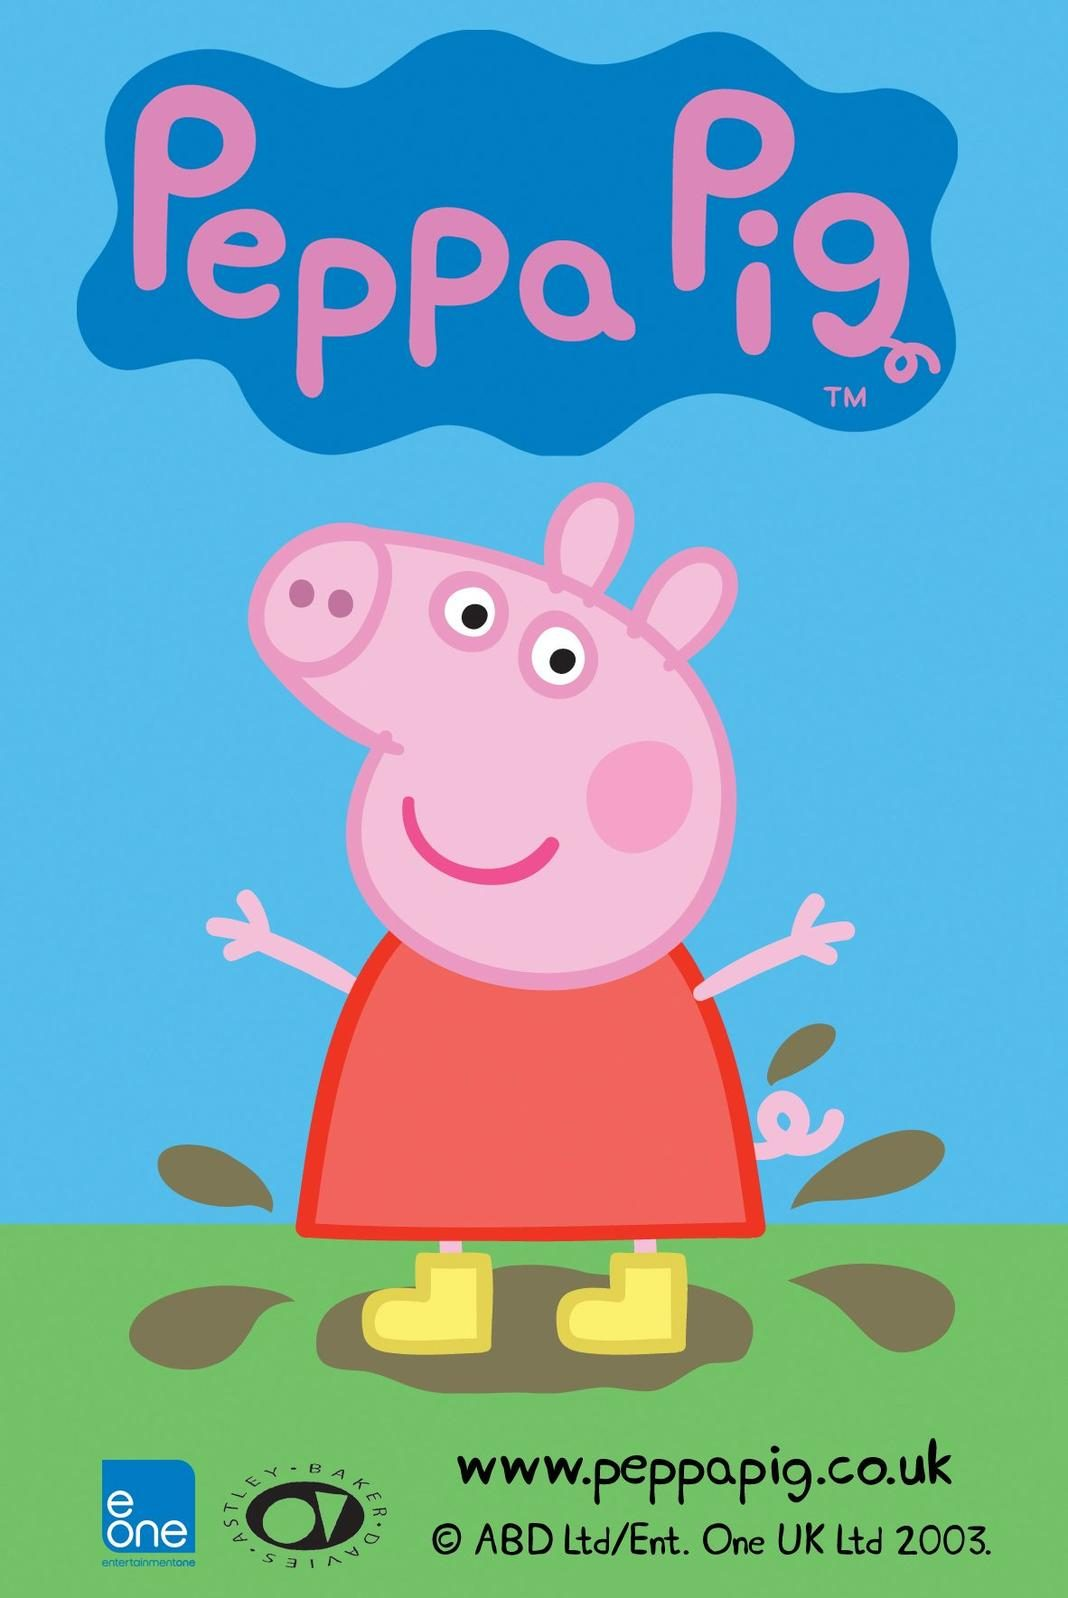 Peppa Pig, who will appearing at Northfield Shopping Centre on Friday February 20 from 11am